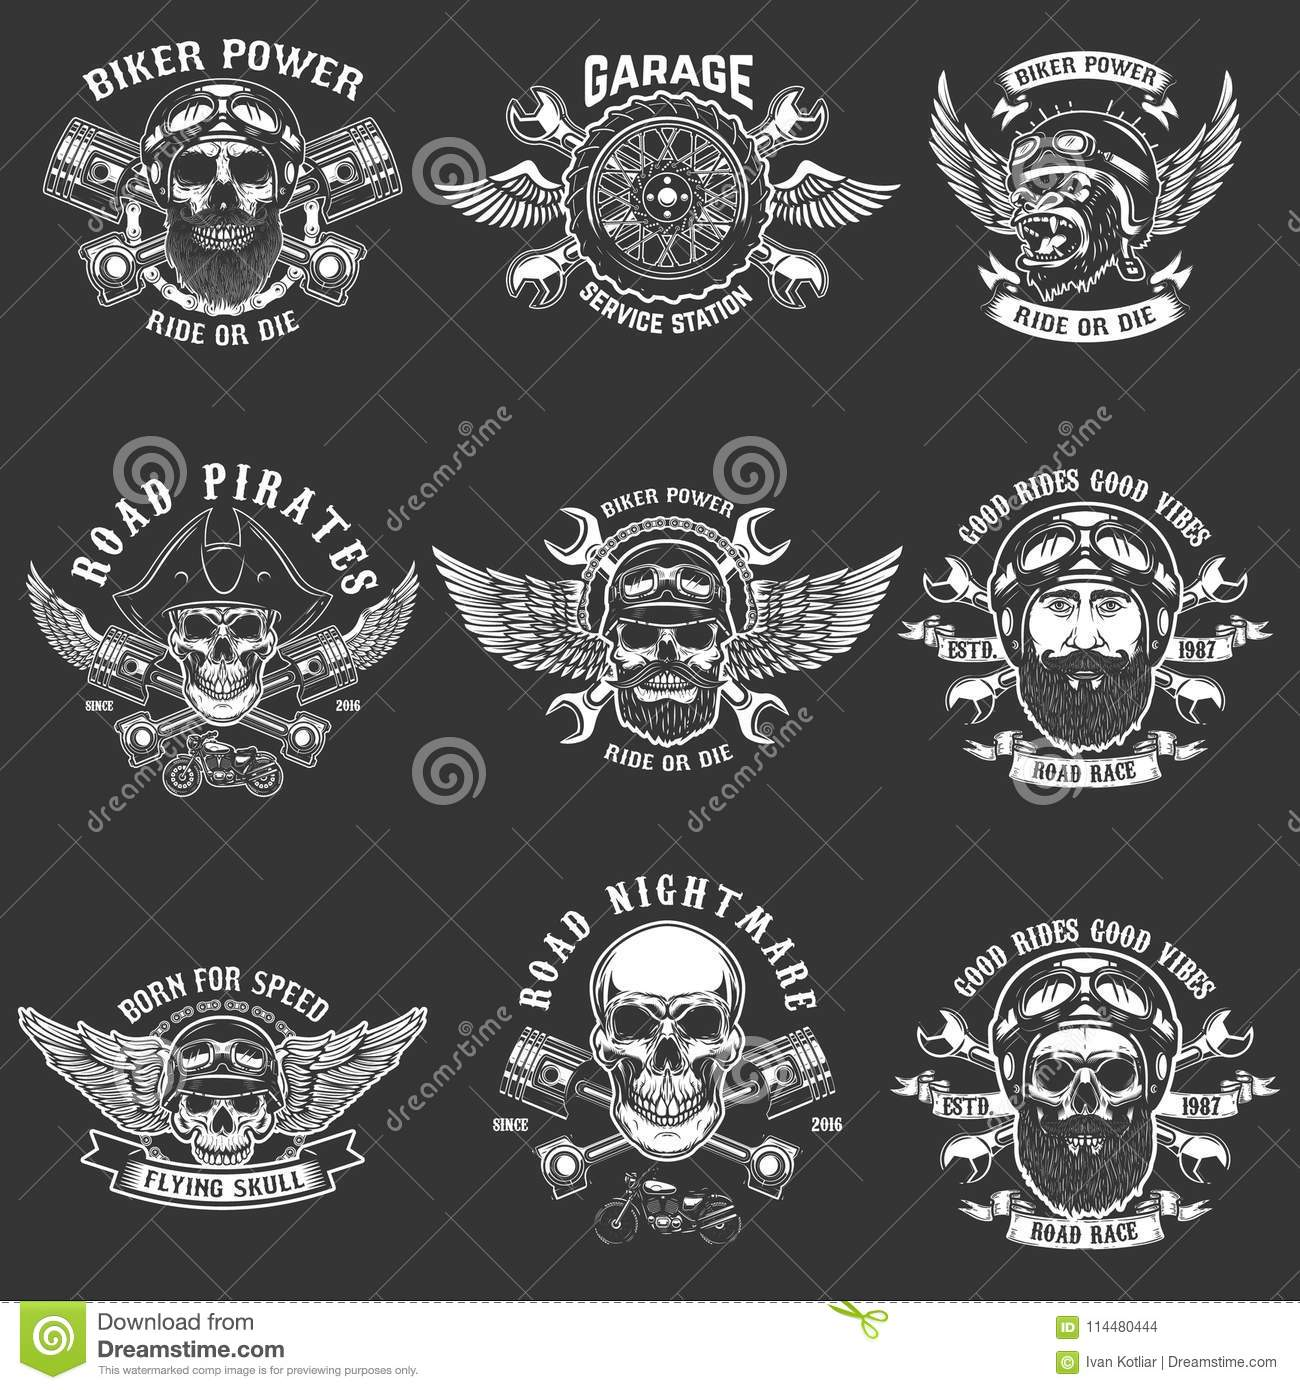 Set of biker club emblem templates. Vintage motorcycle labels. Design element for logo, label, emblem, sign.